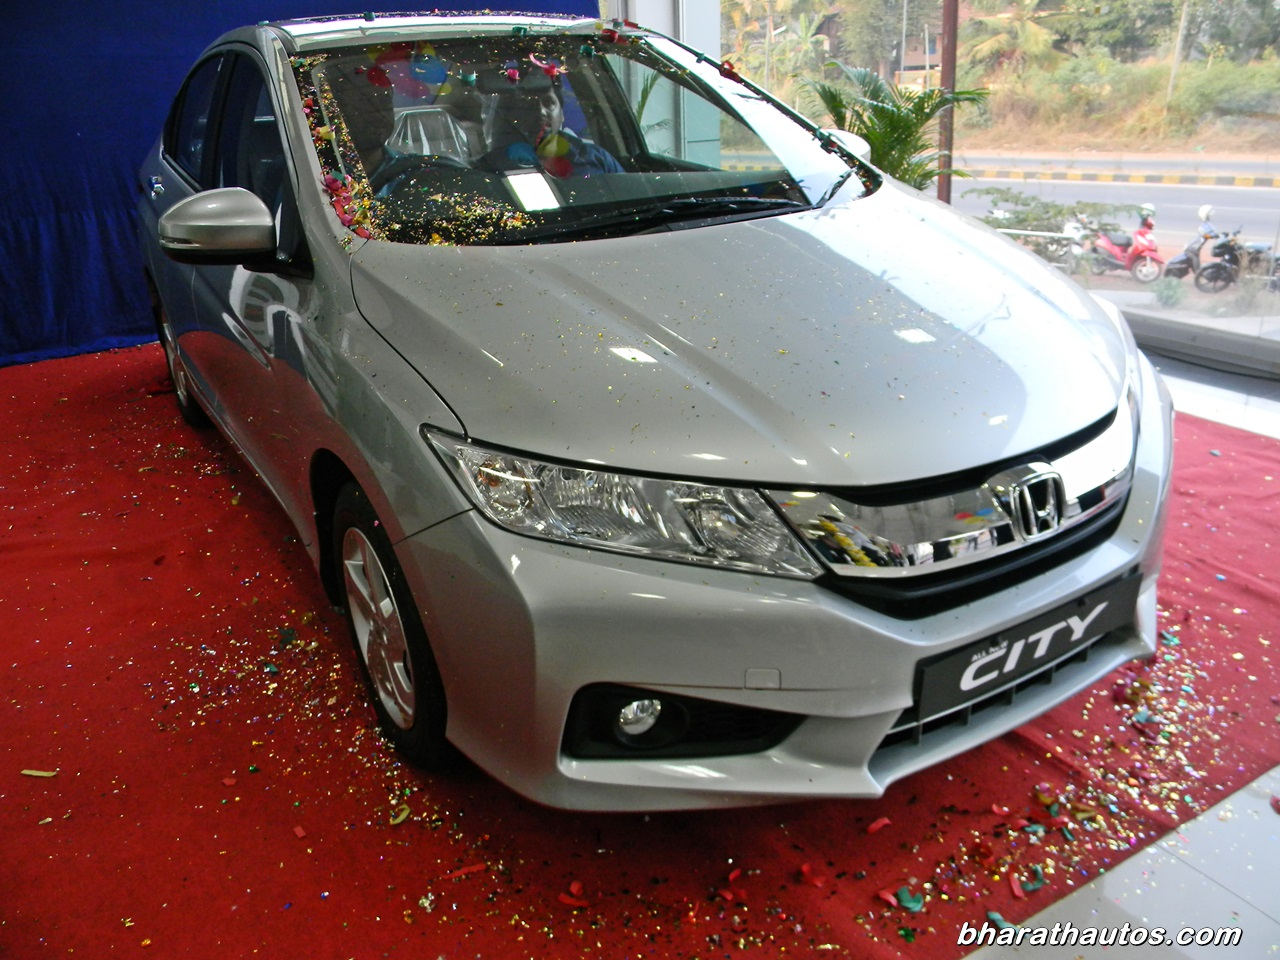 New 2014 Honda City: 40 Pix mega gallery & full details